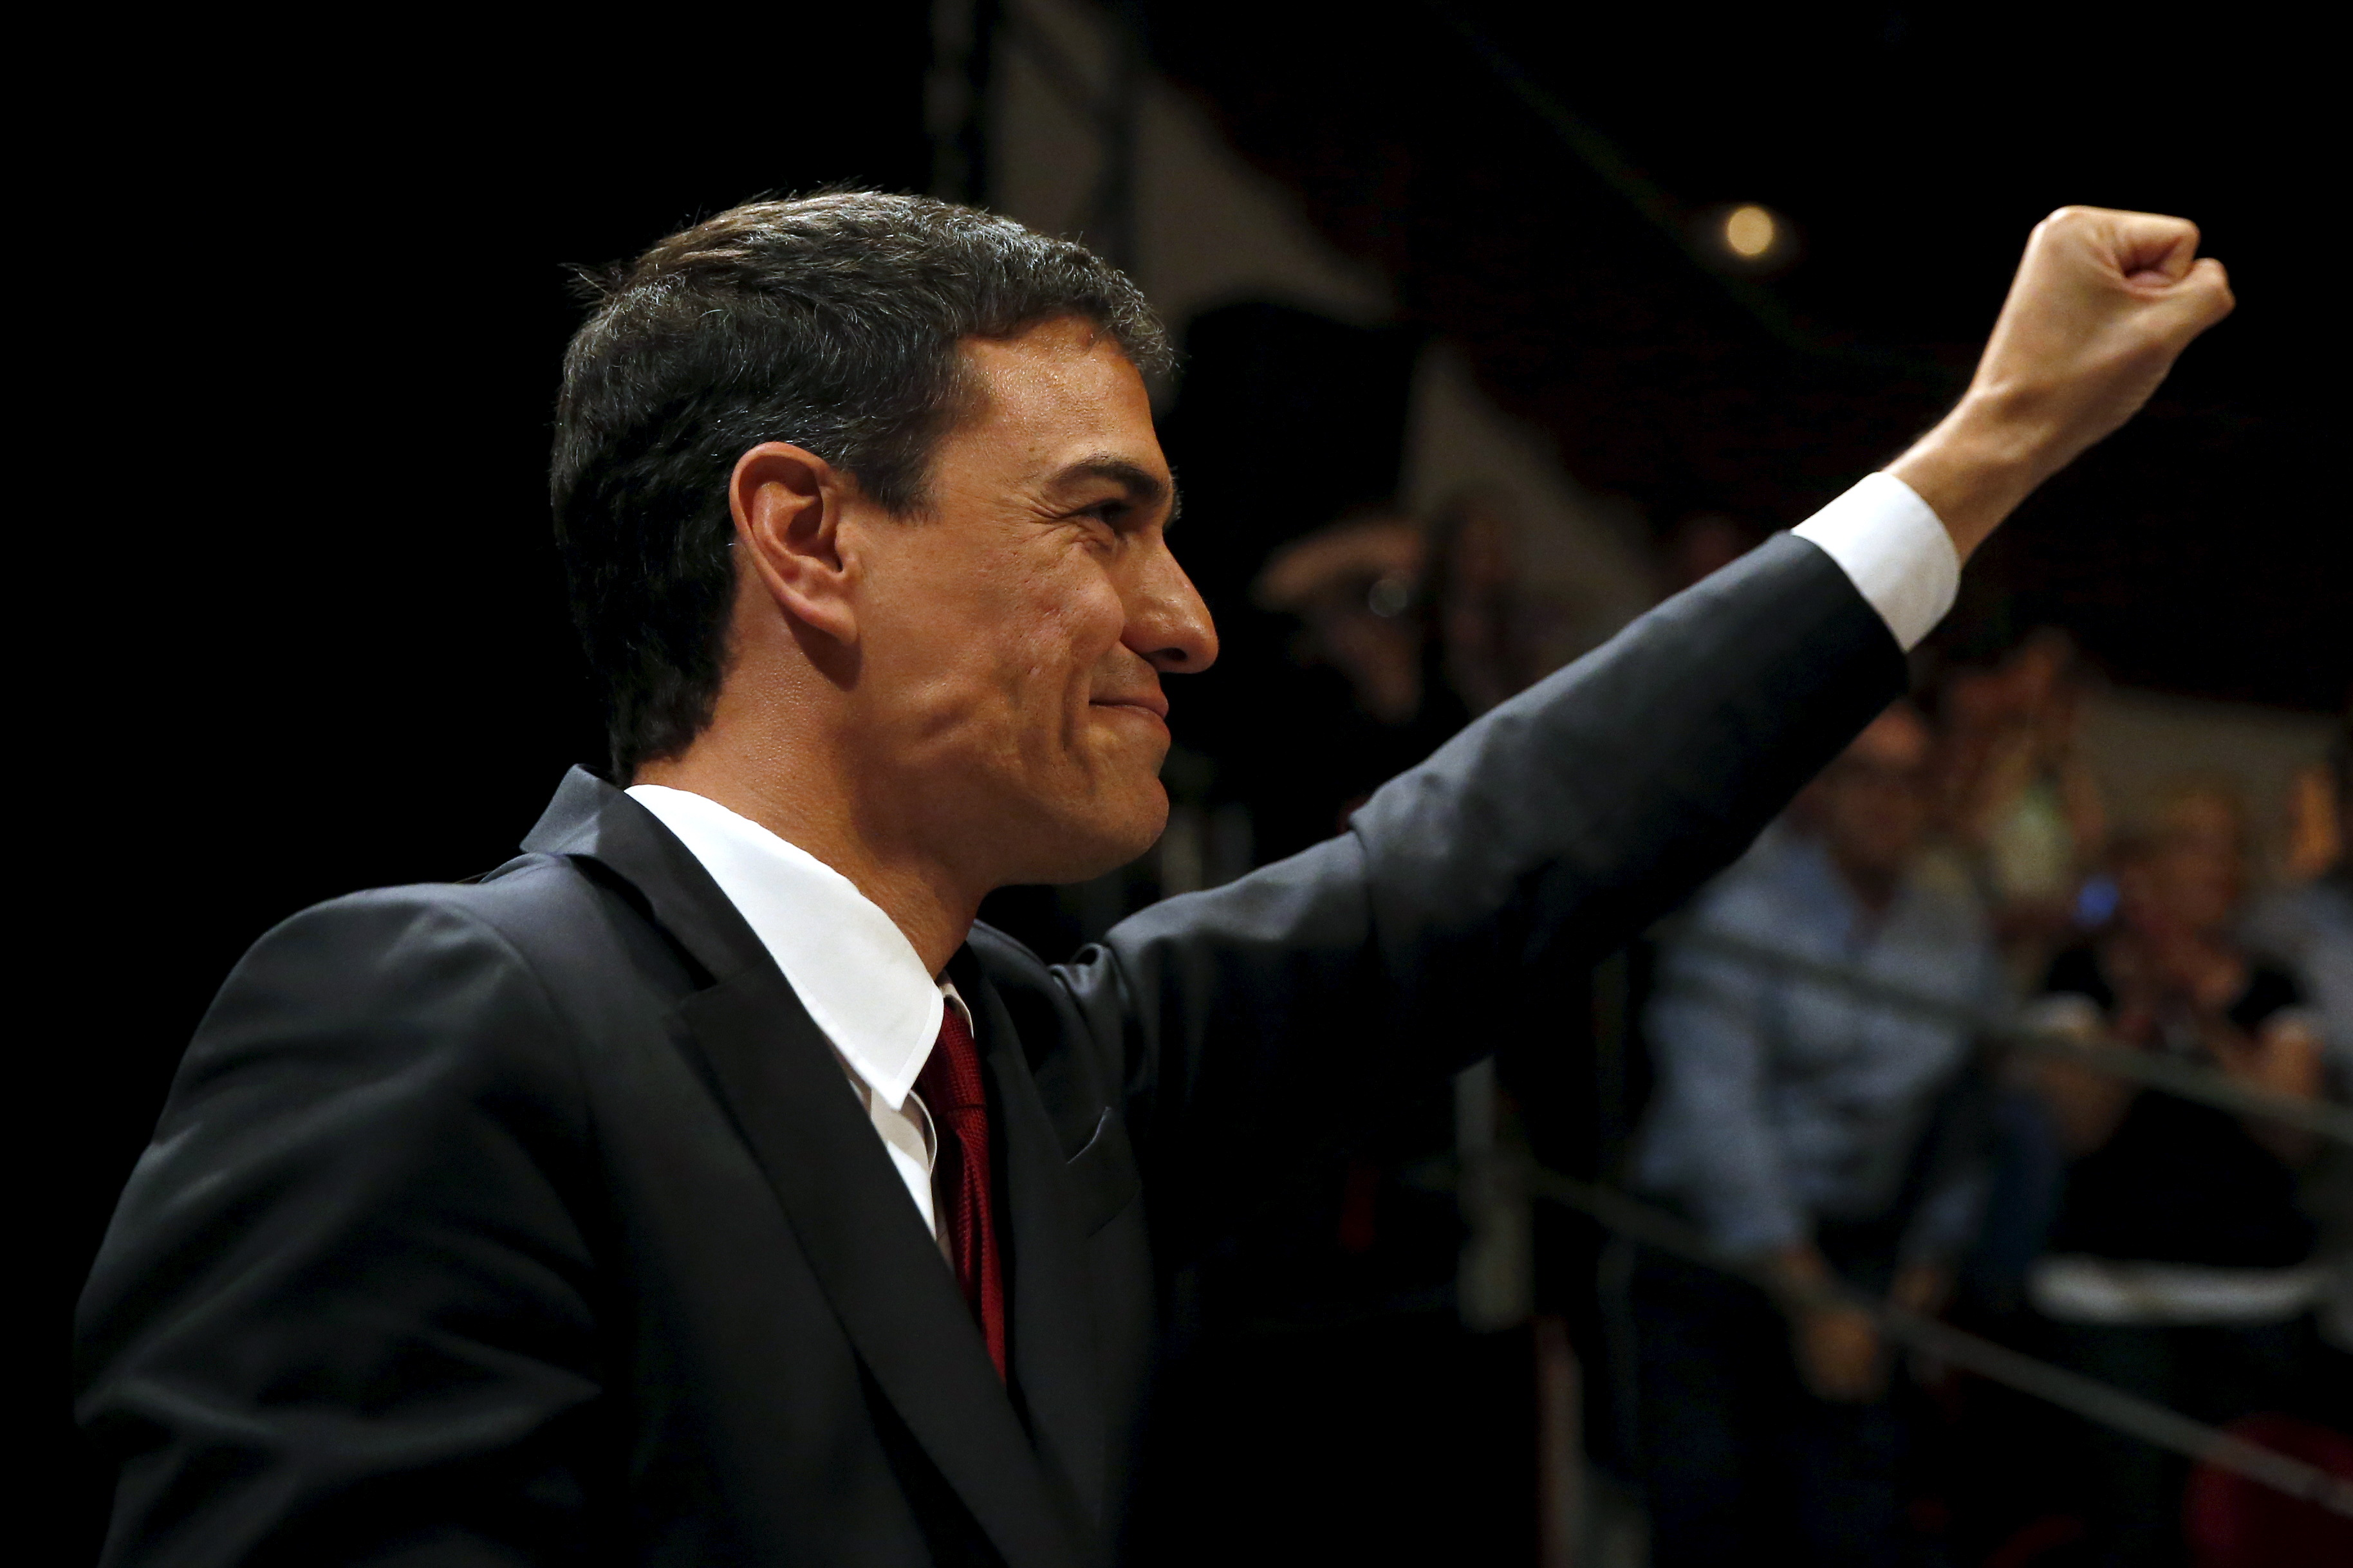 Spain's Socialist Party PSOE leader Pedro Sanchez gestures during a meeting in Madrid, Spain, June 21, 2015. Spain's opposition Socialists on Sunday named party leader Sanchez to run for prime minister in a general election, due by the end of the year, which is expected to be a close race against the ruling conservatives and newcomer parties. REUTERS/Juan Medina - RTX1HGHX